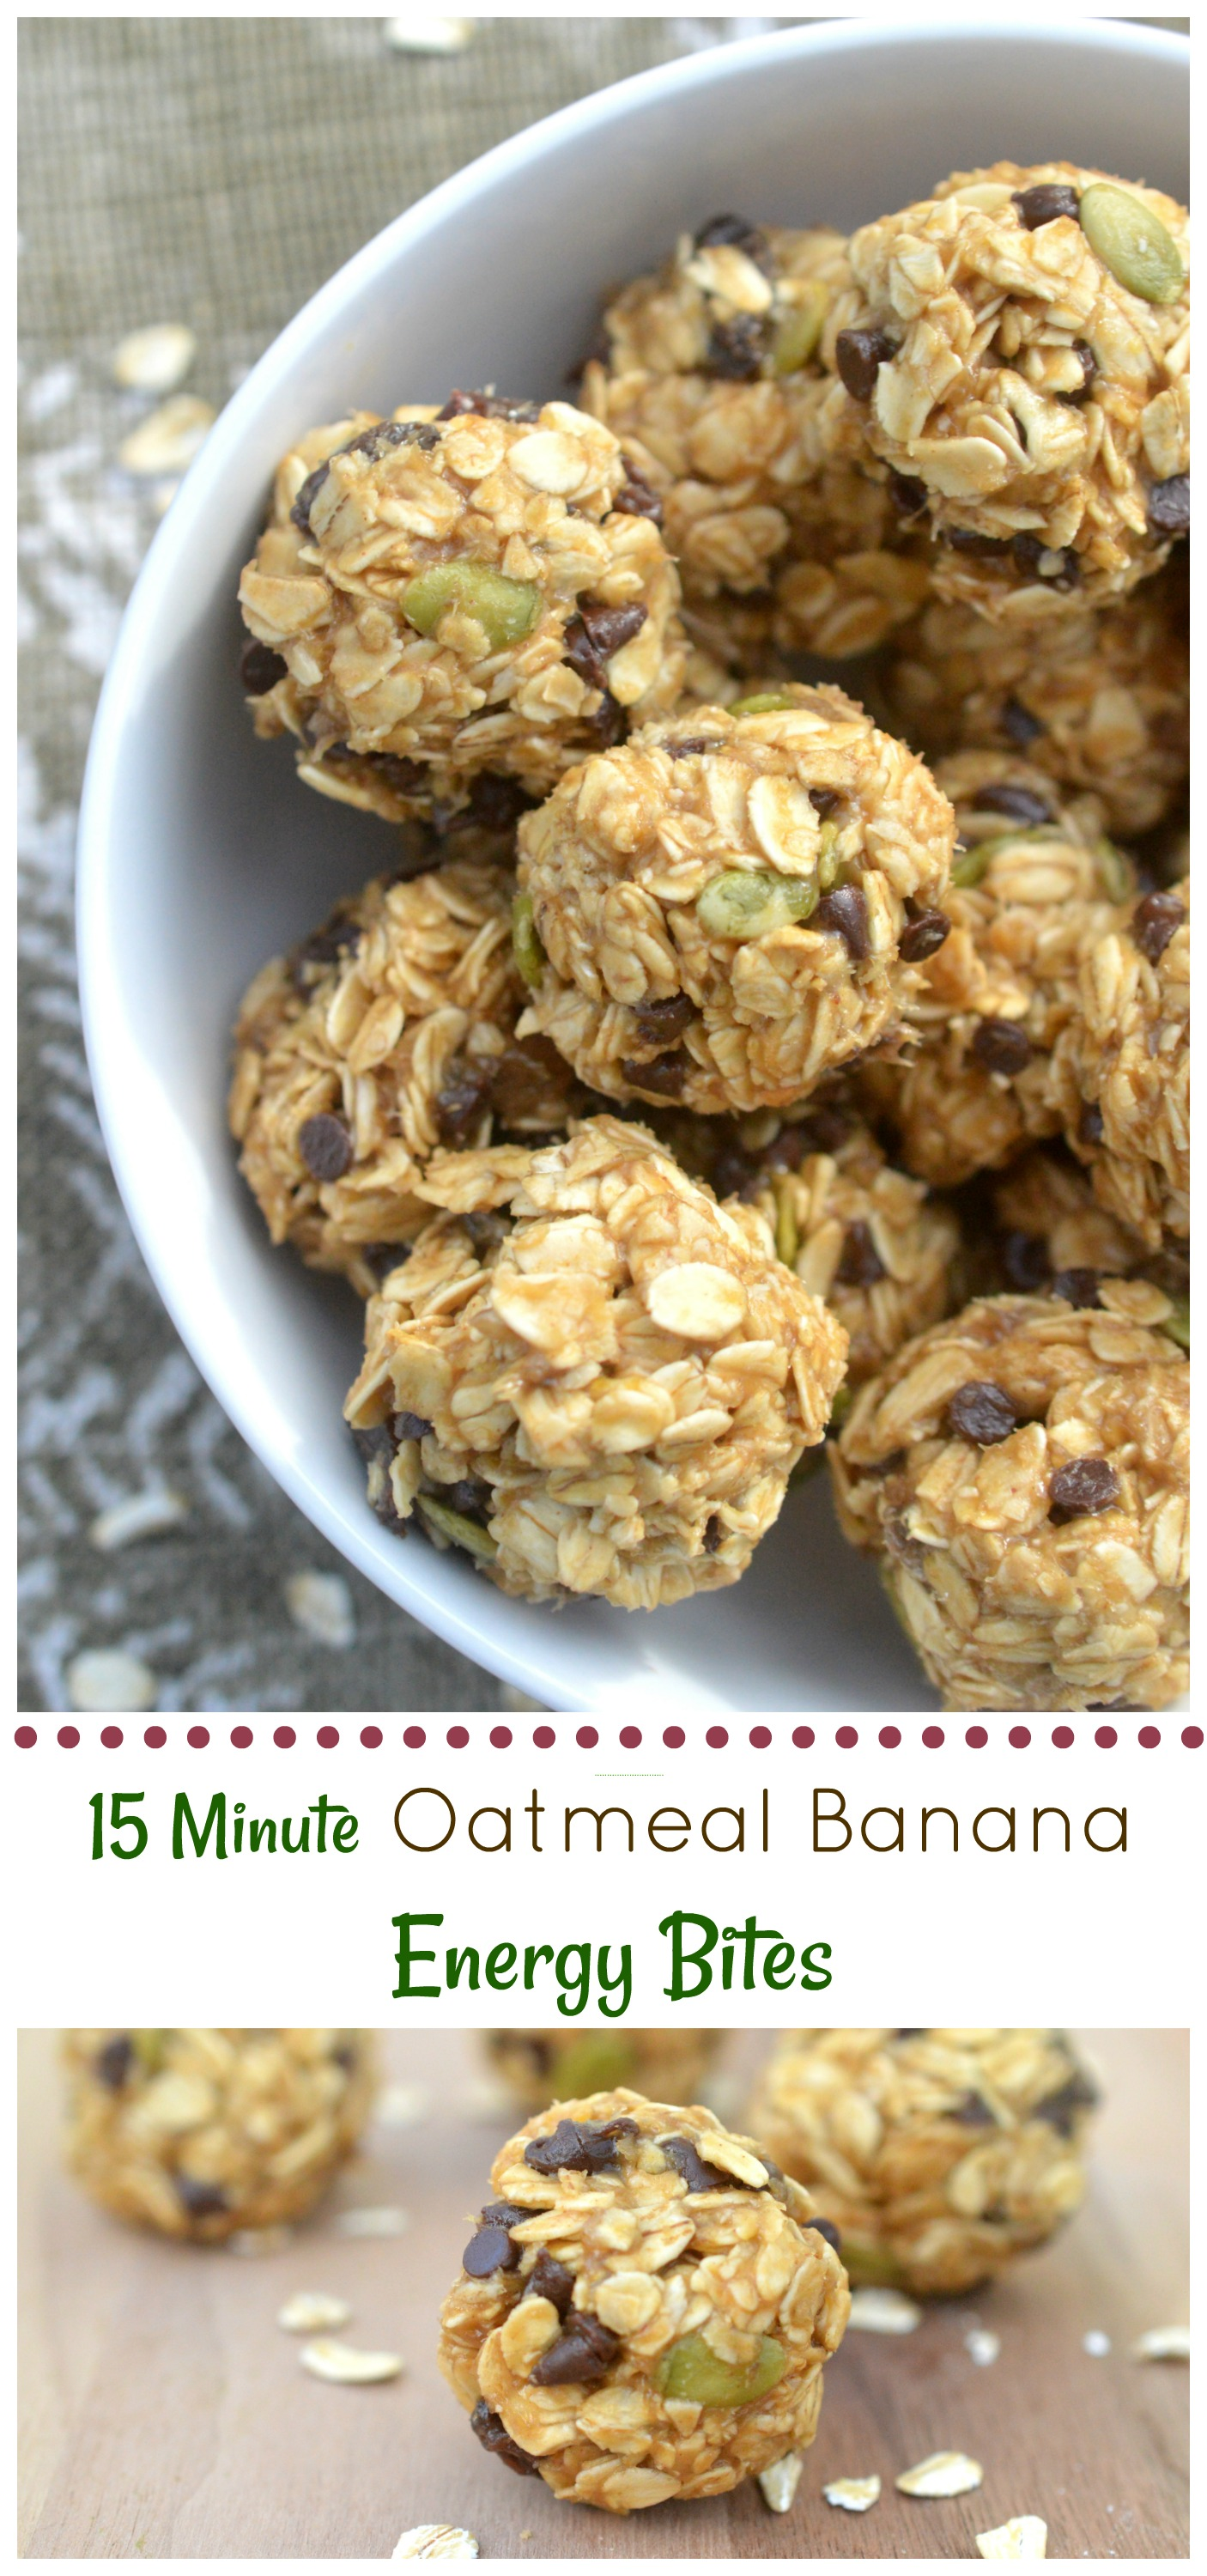 15 Minute Oatmeal Banana Energy Bites